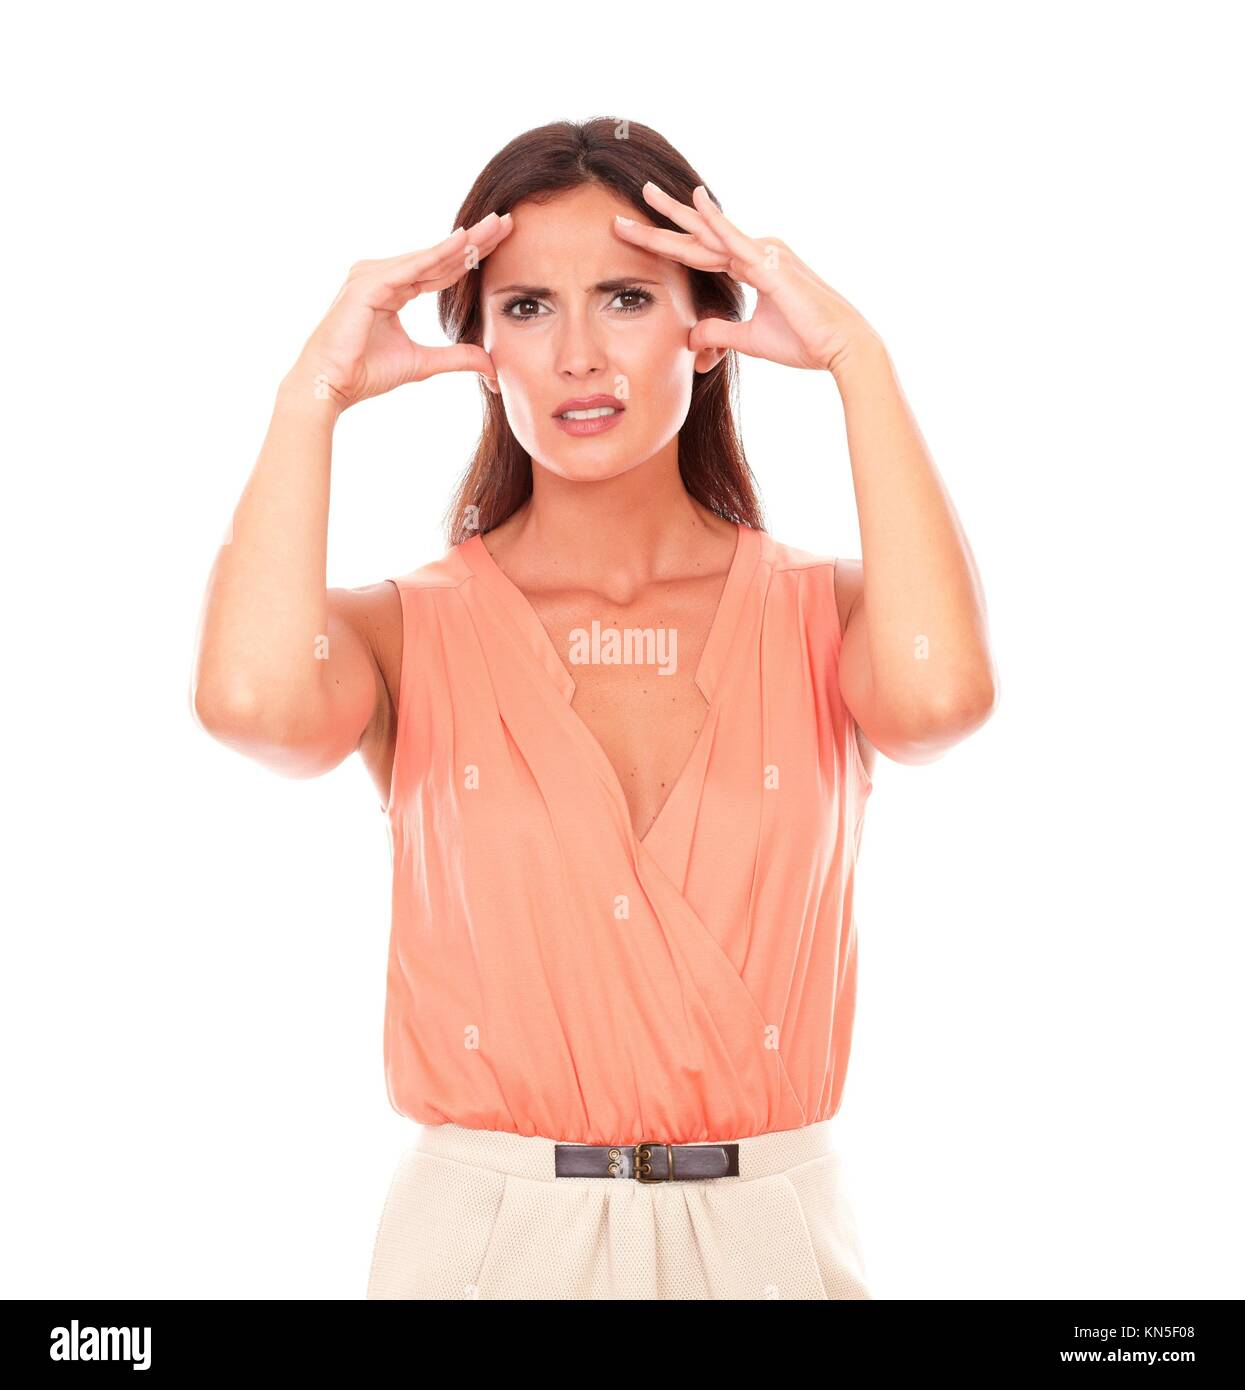 Hispanic female suffering from migraine headache with hand on head and looking at you in white background. - Stock Image